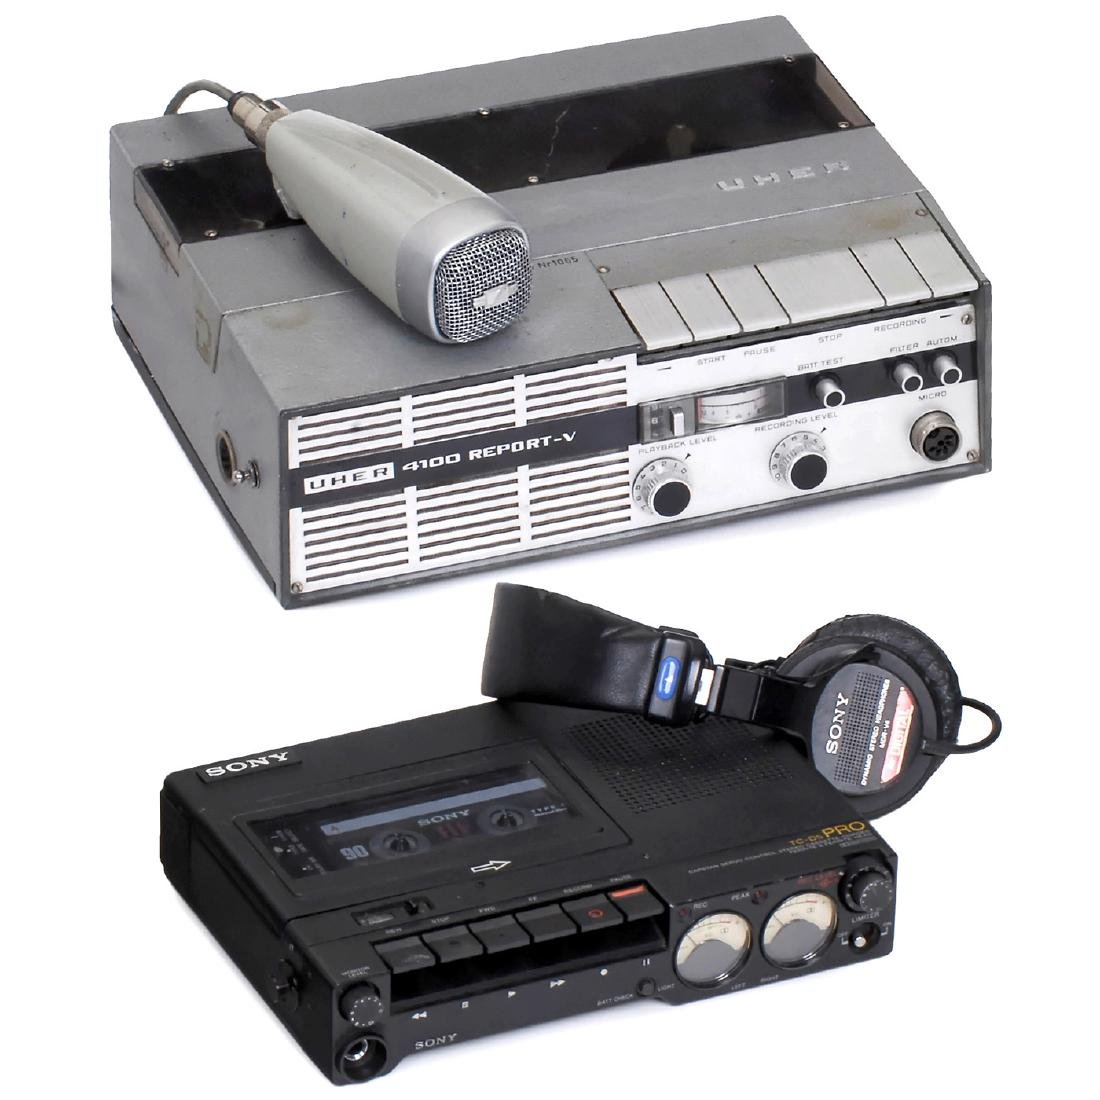 2 Professional Tape Recorders, c. 1980